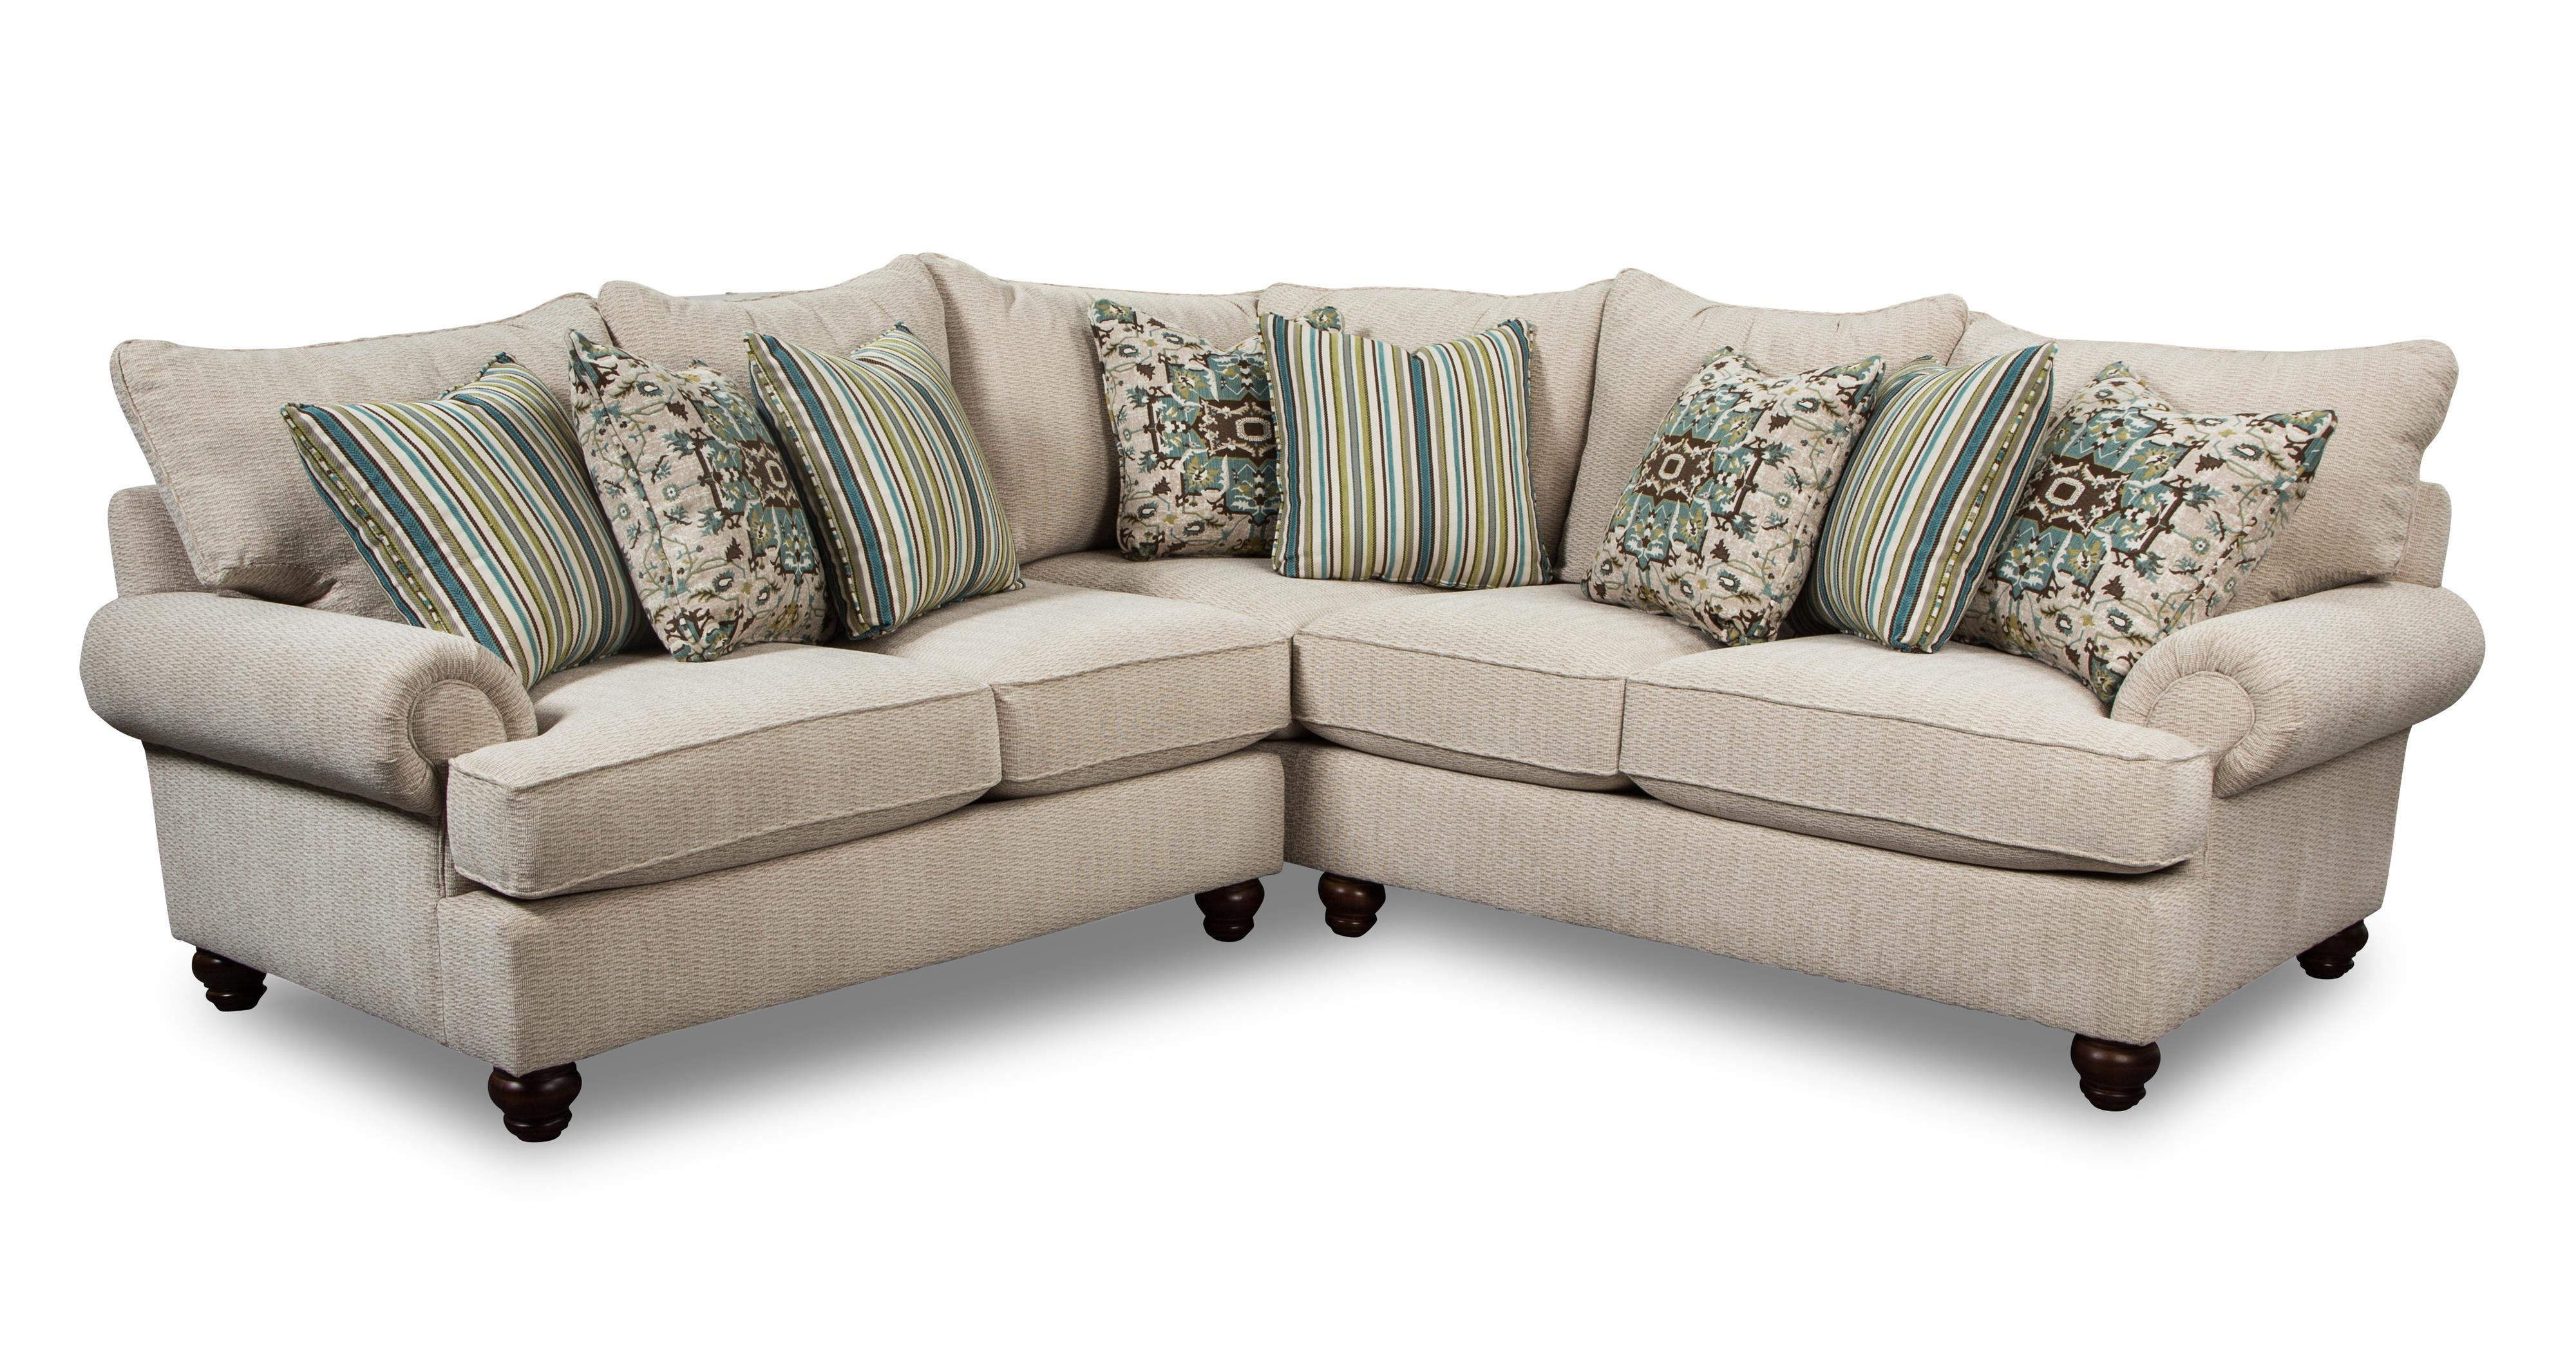 Two piece sectional sofa with turned wood feet by